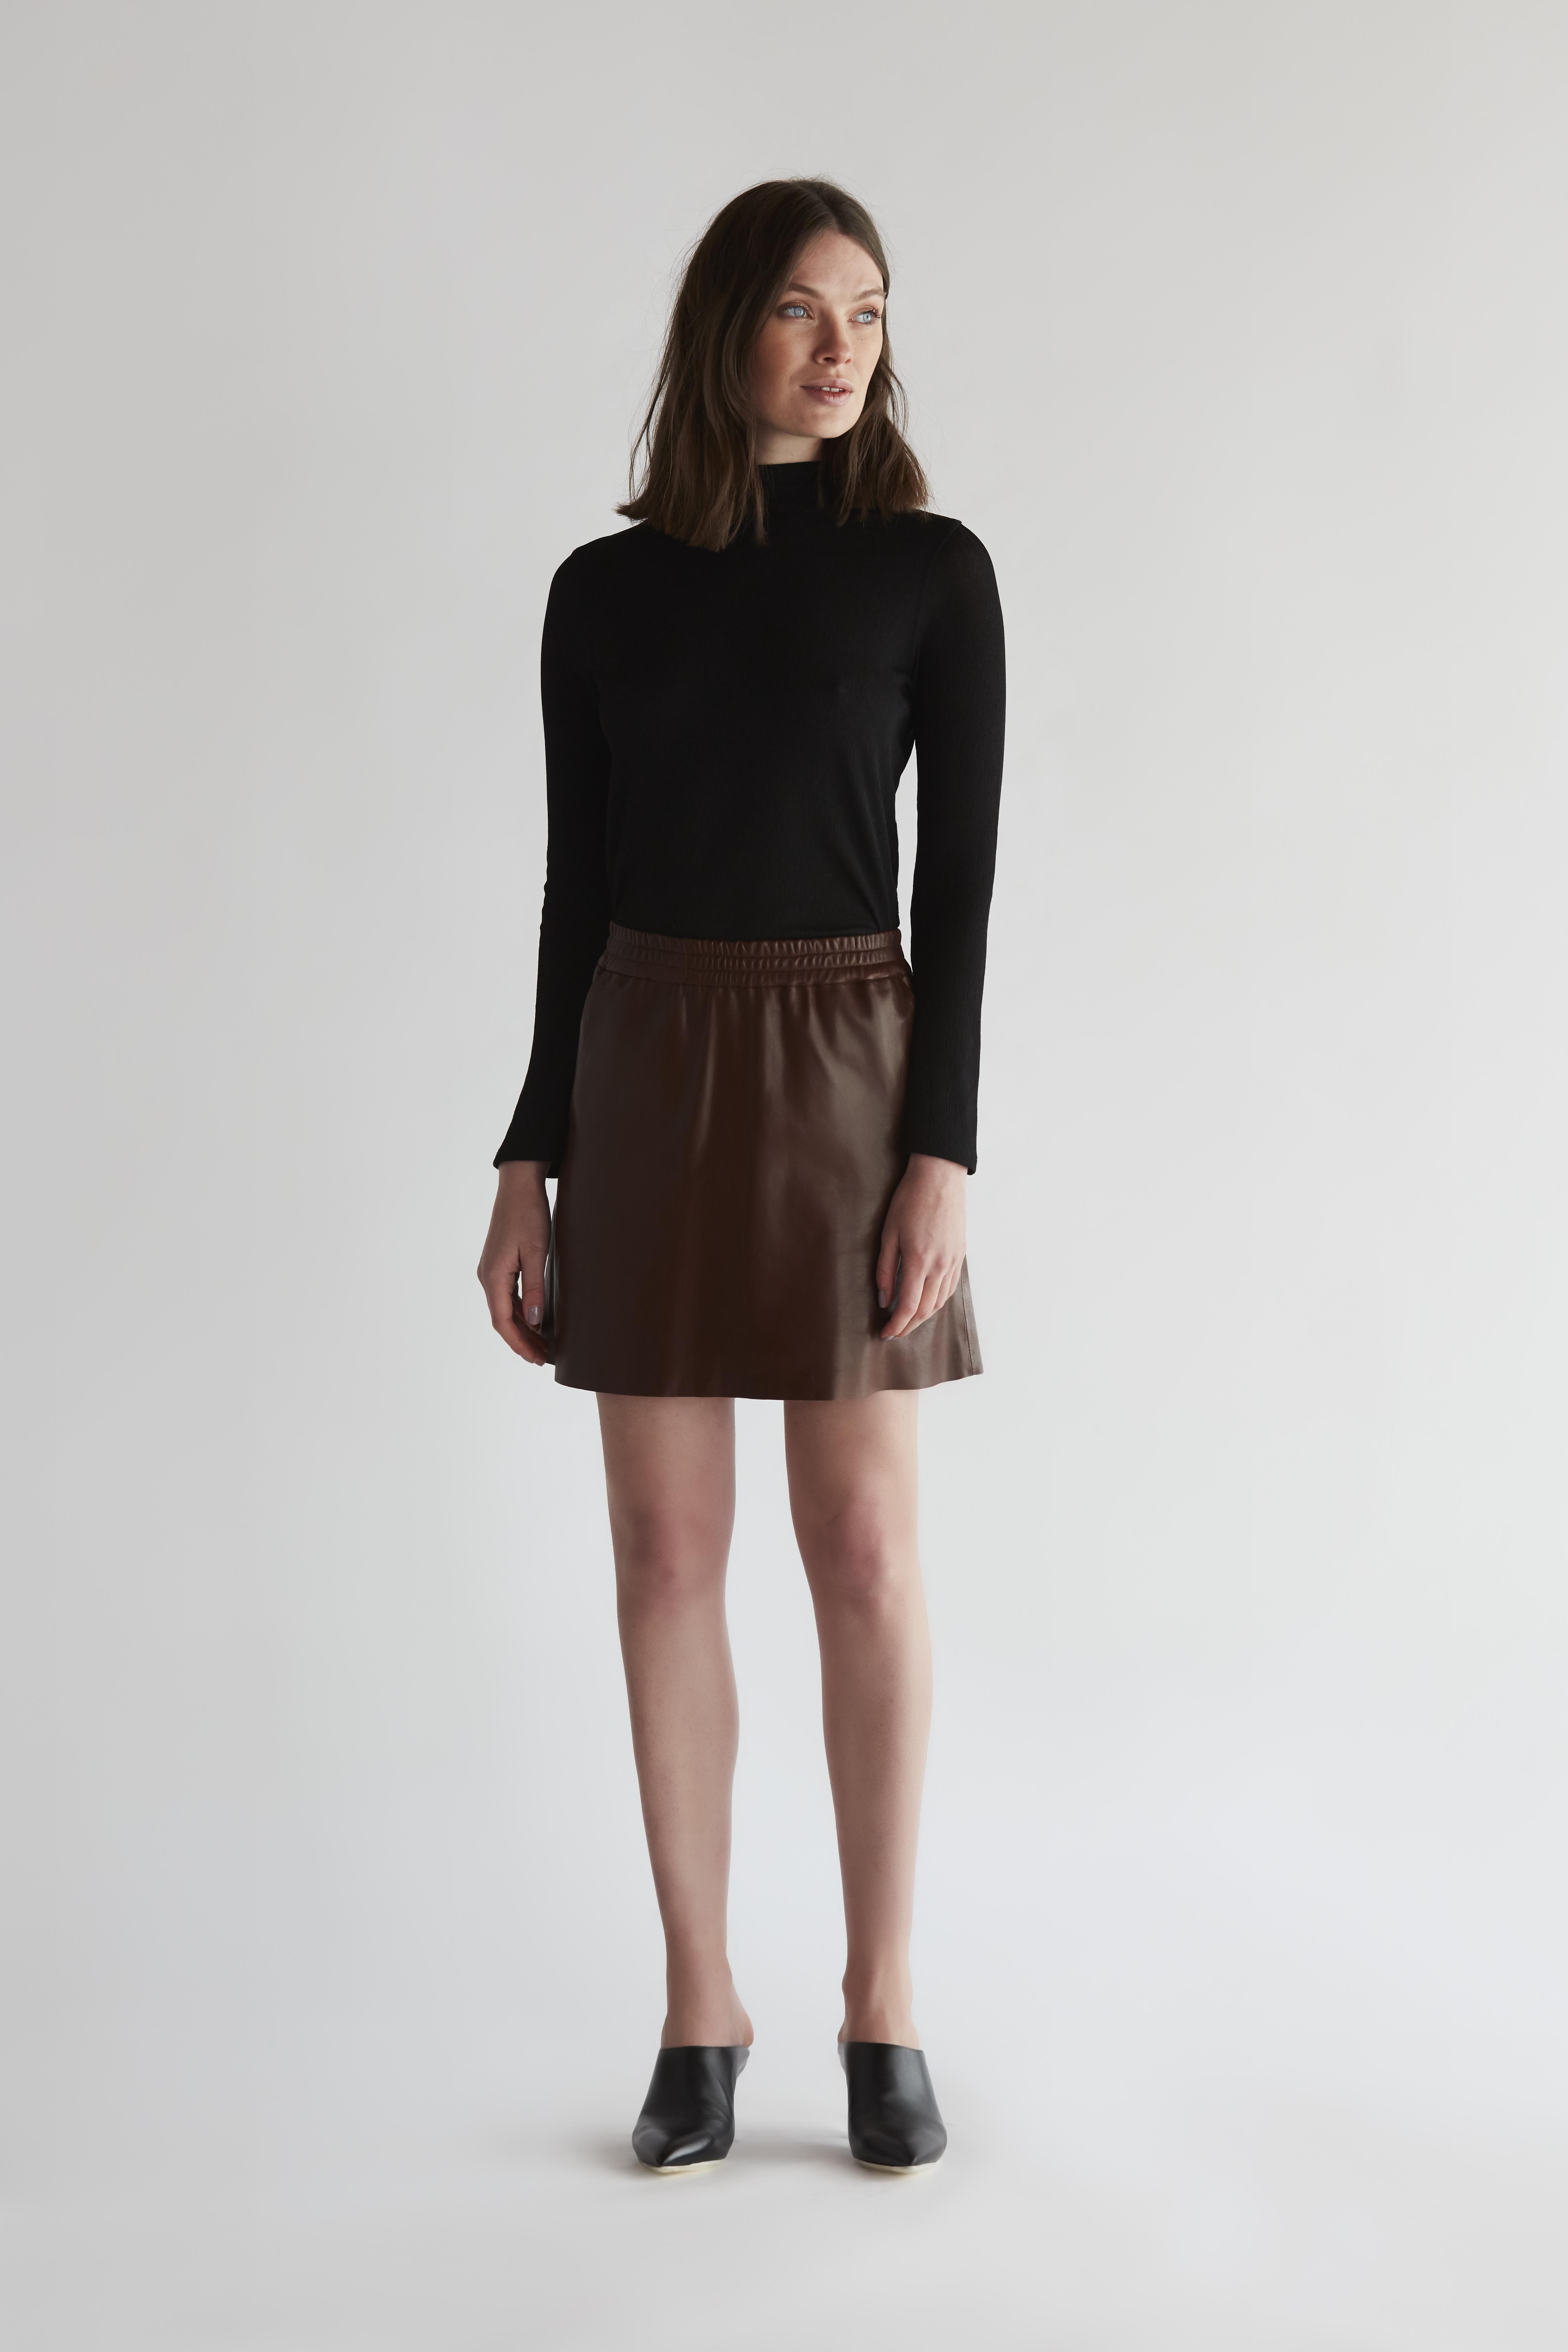 Short Leather skirt - Khaki by The Ruf on curated-crowd.com